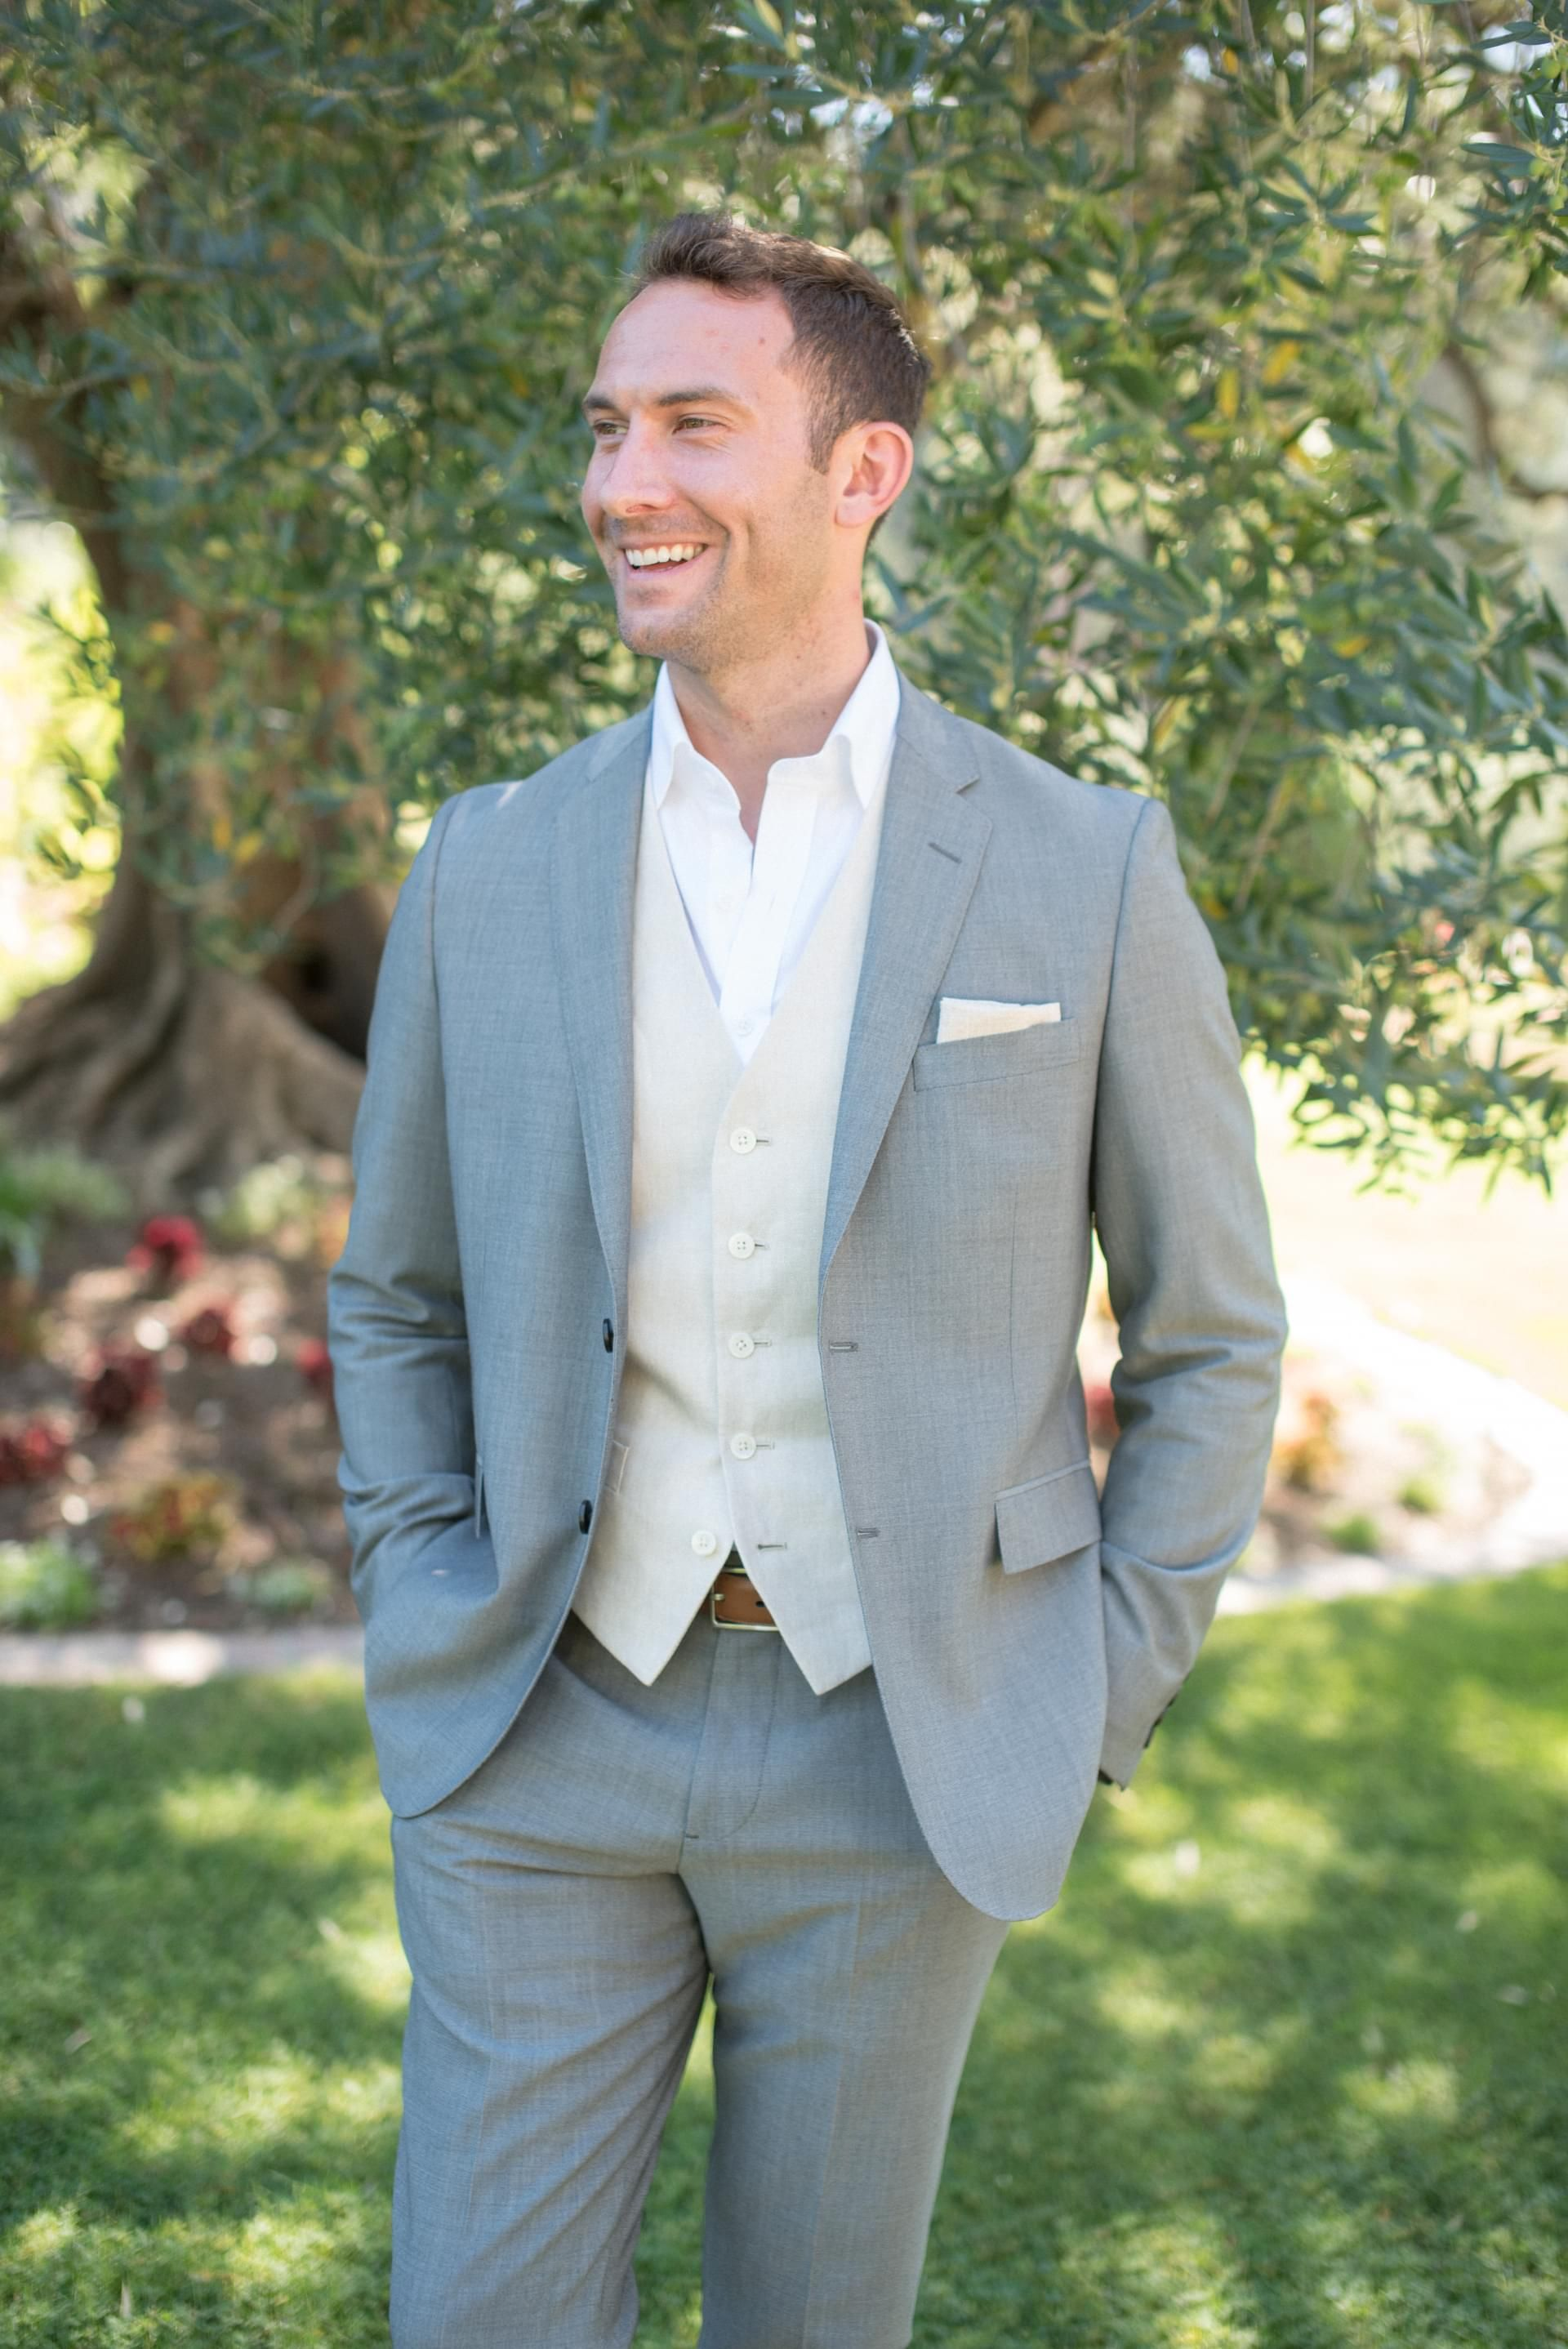 The Smarter Way to Wed | White pocket square, Groom attire and Wedding